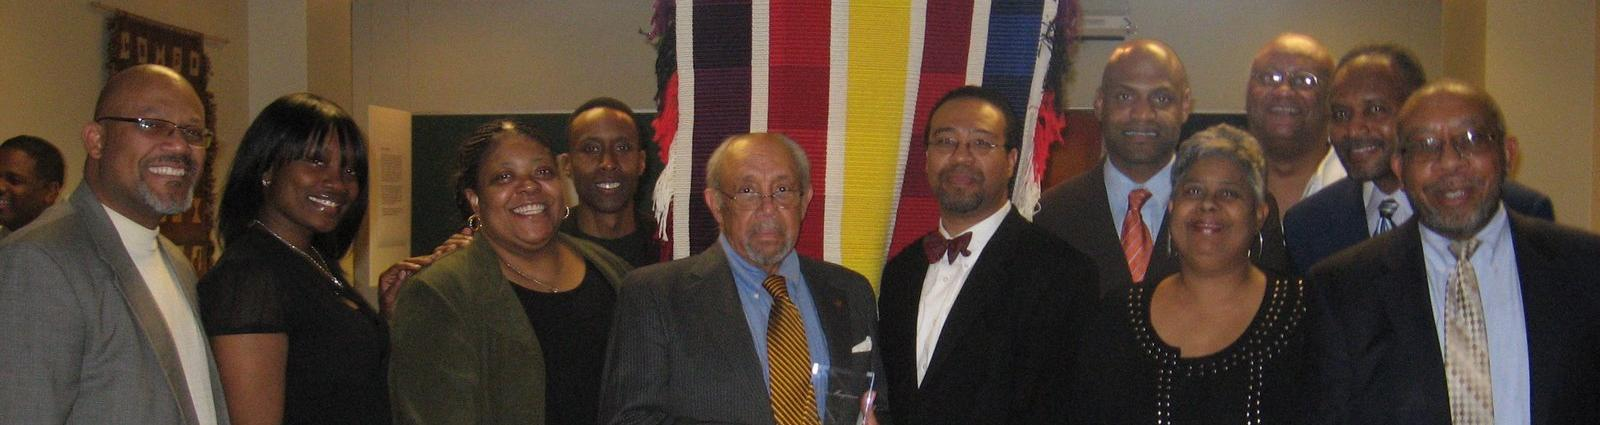 Roger Margerum (center) receives NOMA Detroit Lifetime Achievement Award (April 16, 2009)